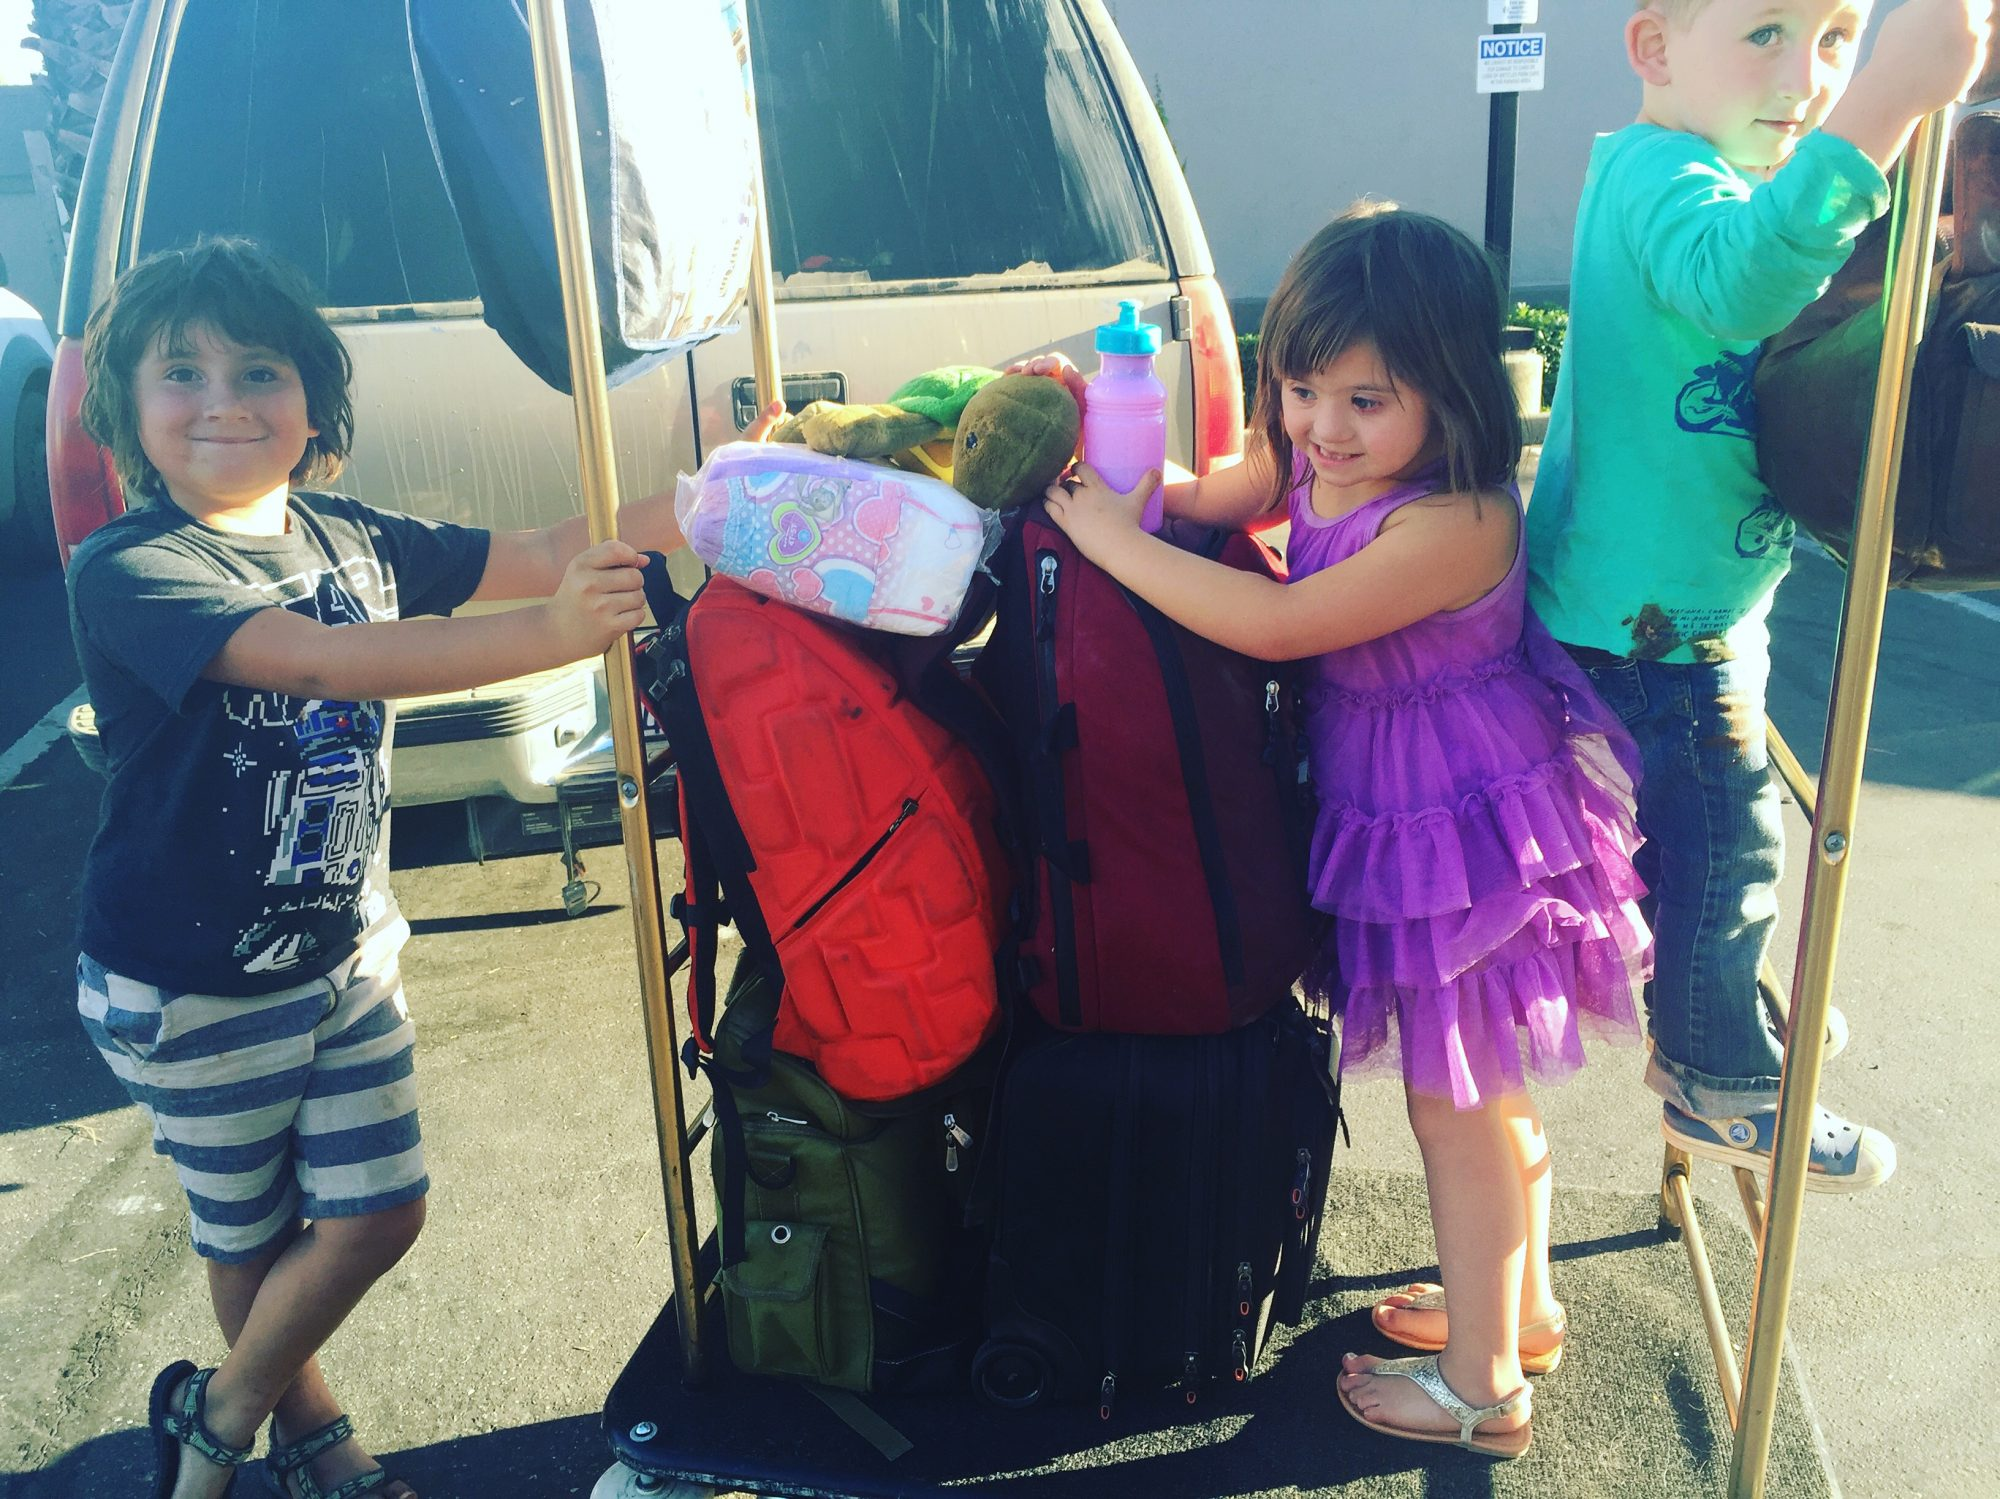 kids on luggage carrier